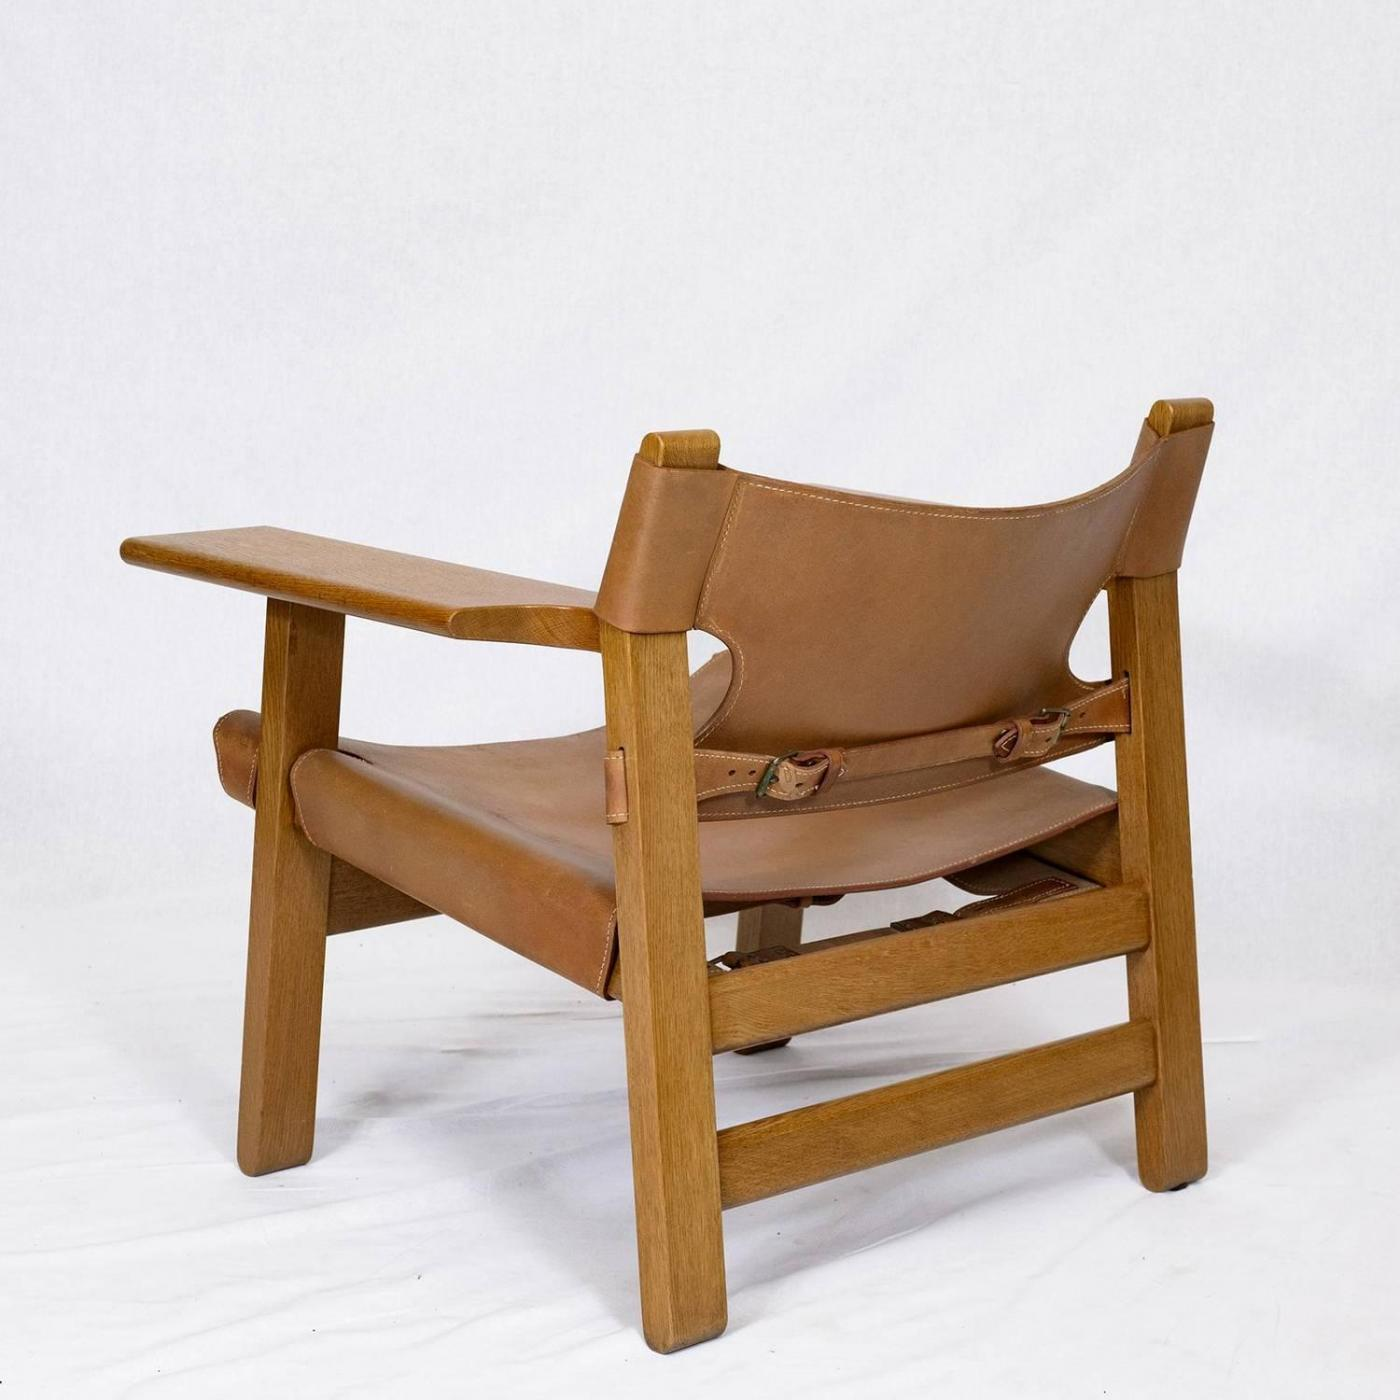 11 Scandinavian Mid Century Modern Furniture Design Pioneers Whose